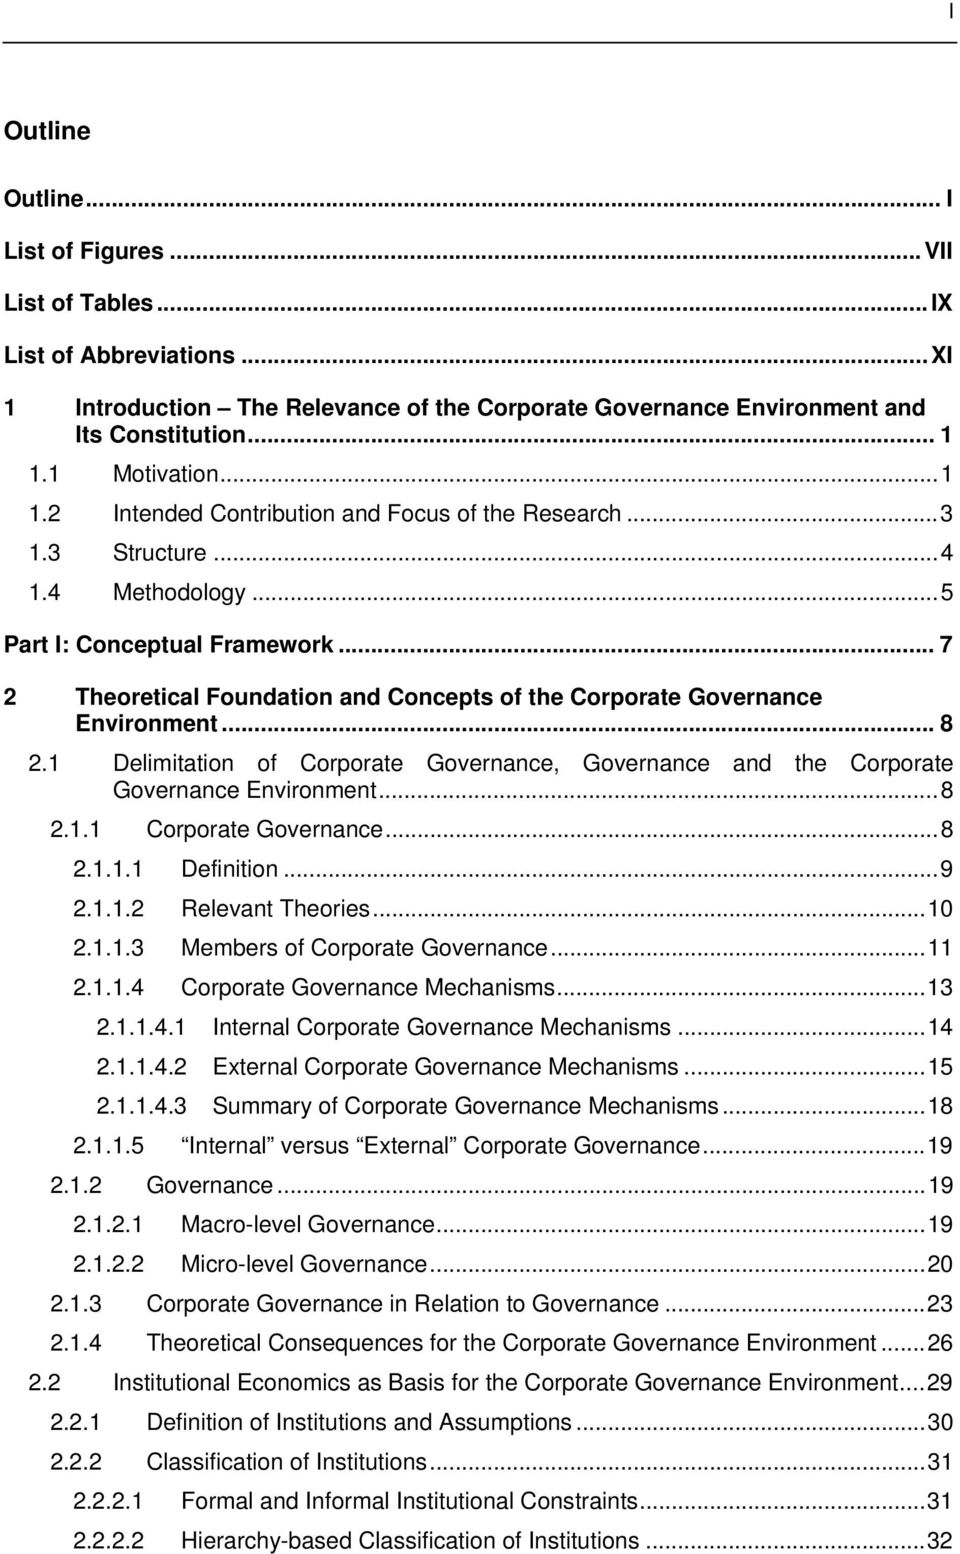 .. 7 2 Theoretical Foundation and Concepts of the Corporate Governance Environment... 8 2.1 Delimitation of Corporate Governance, Governance and the Corporate Governance Environment...8 2.1.1 Corporate Governance.